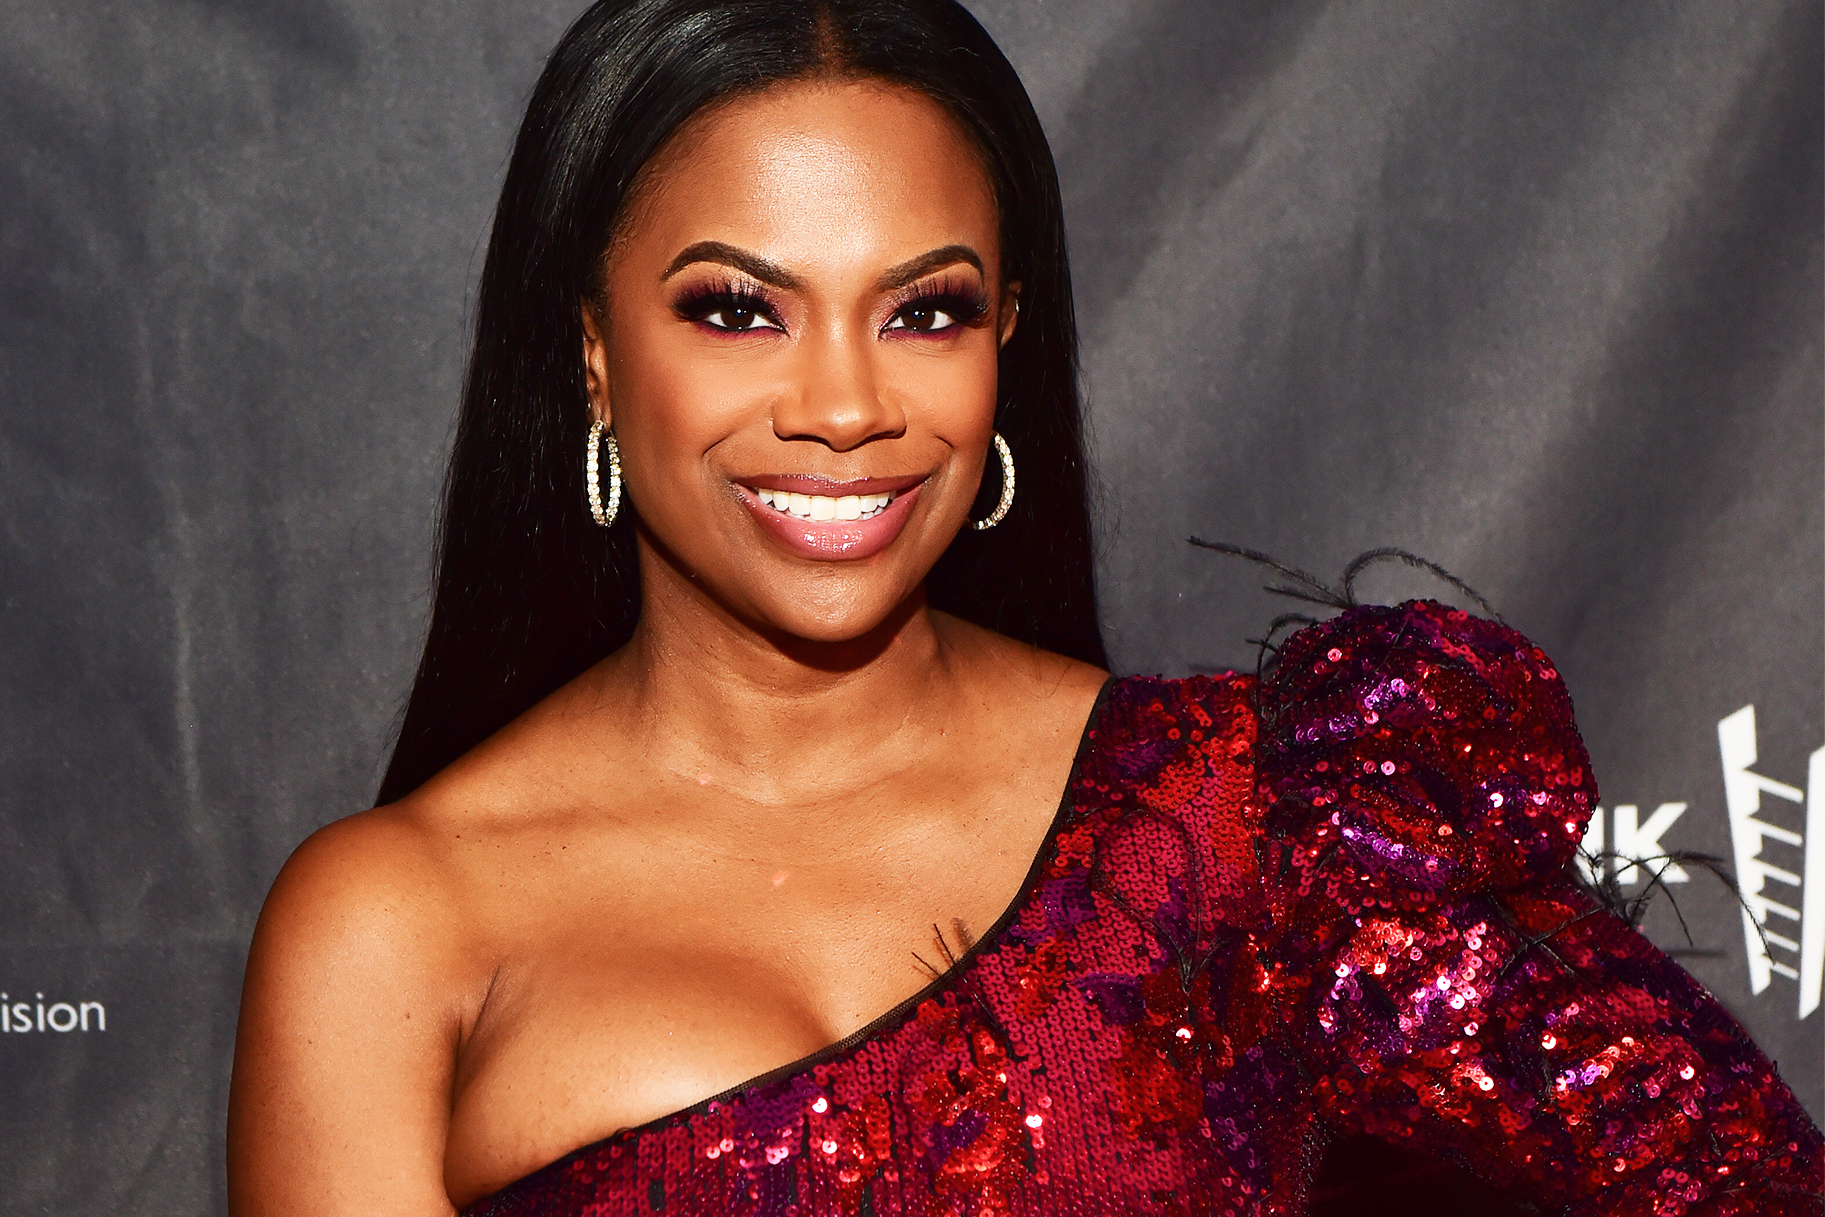 Kandi Burruss Is Honored To Be In The Same Photo With Women Who Are Pushing The Culture Forward